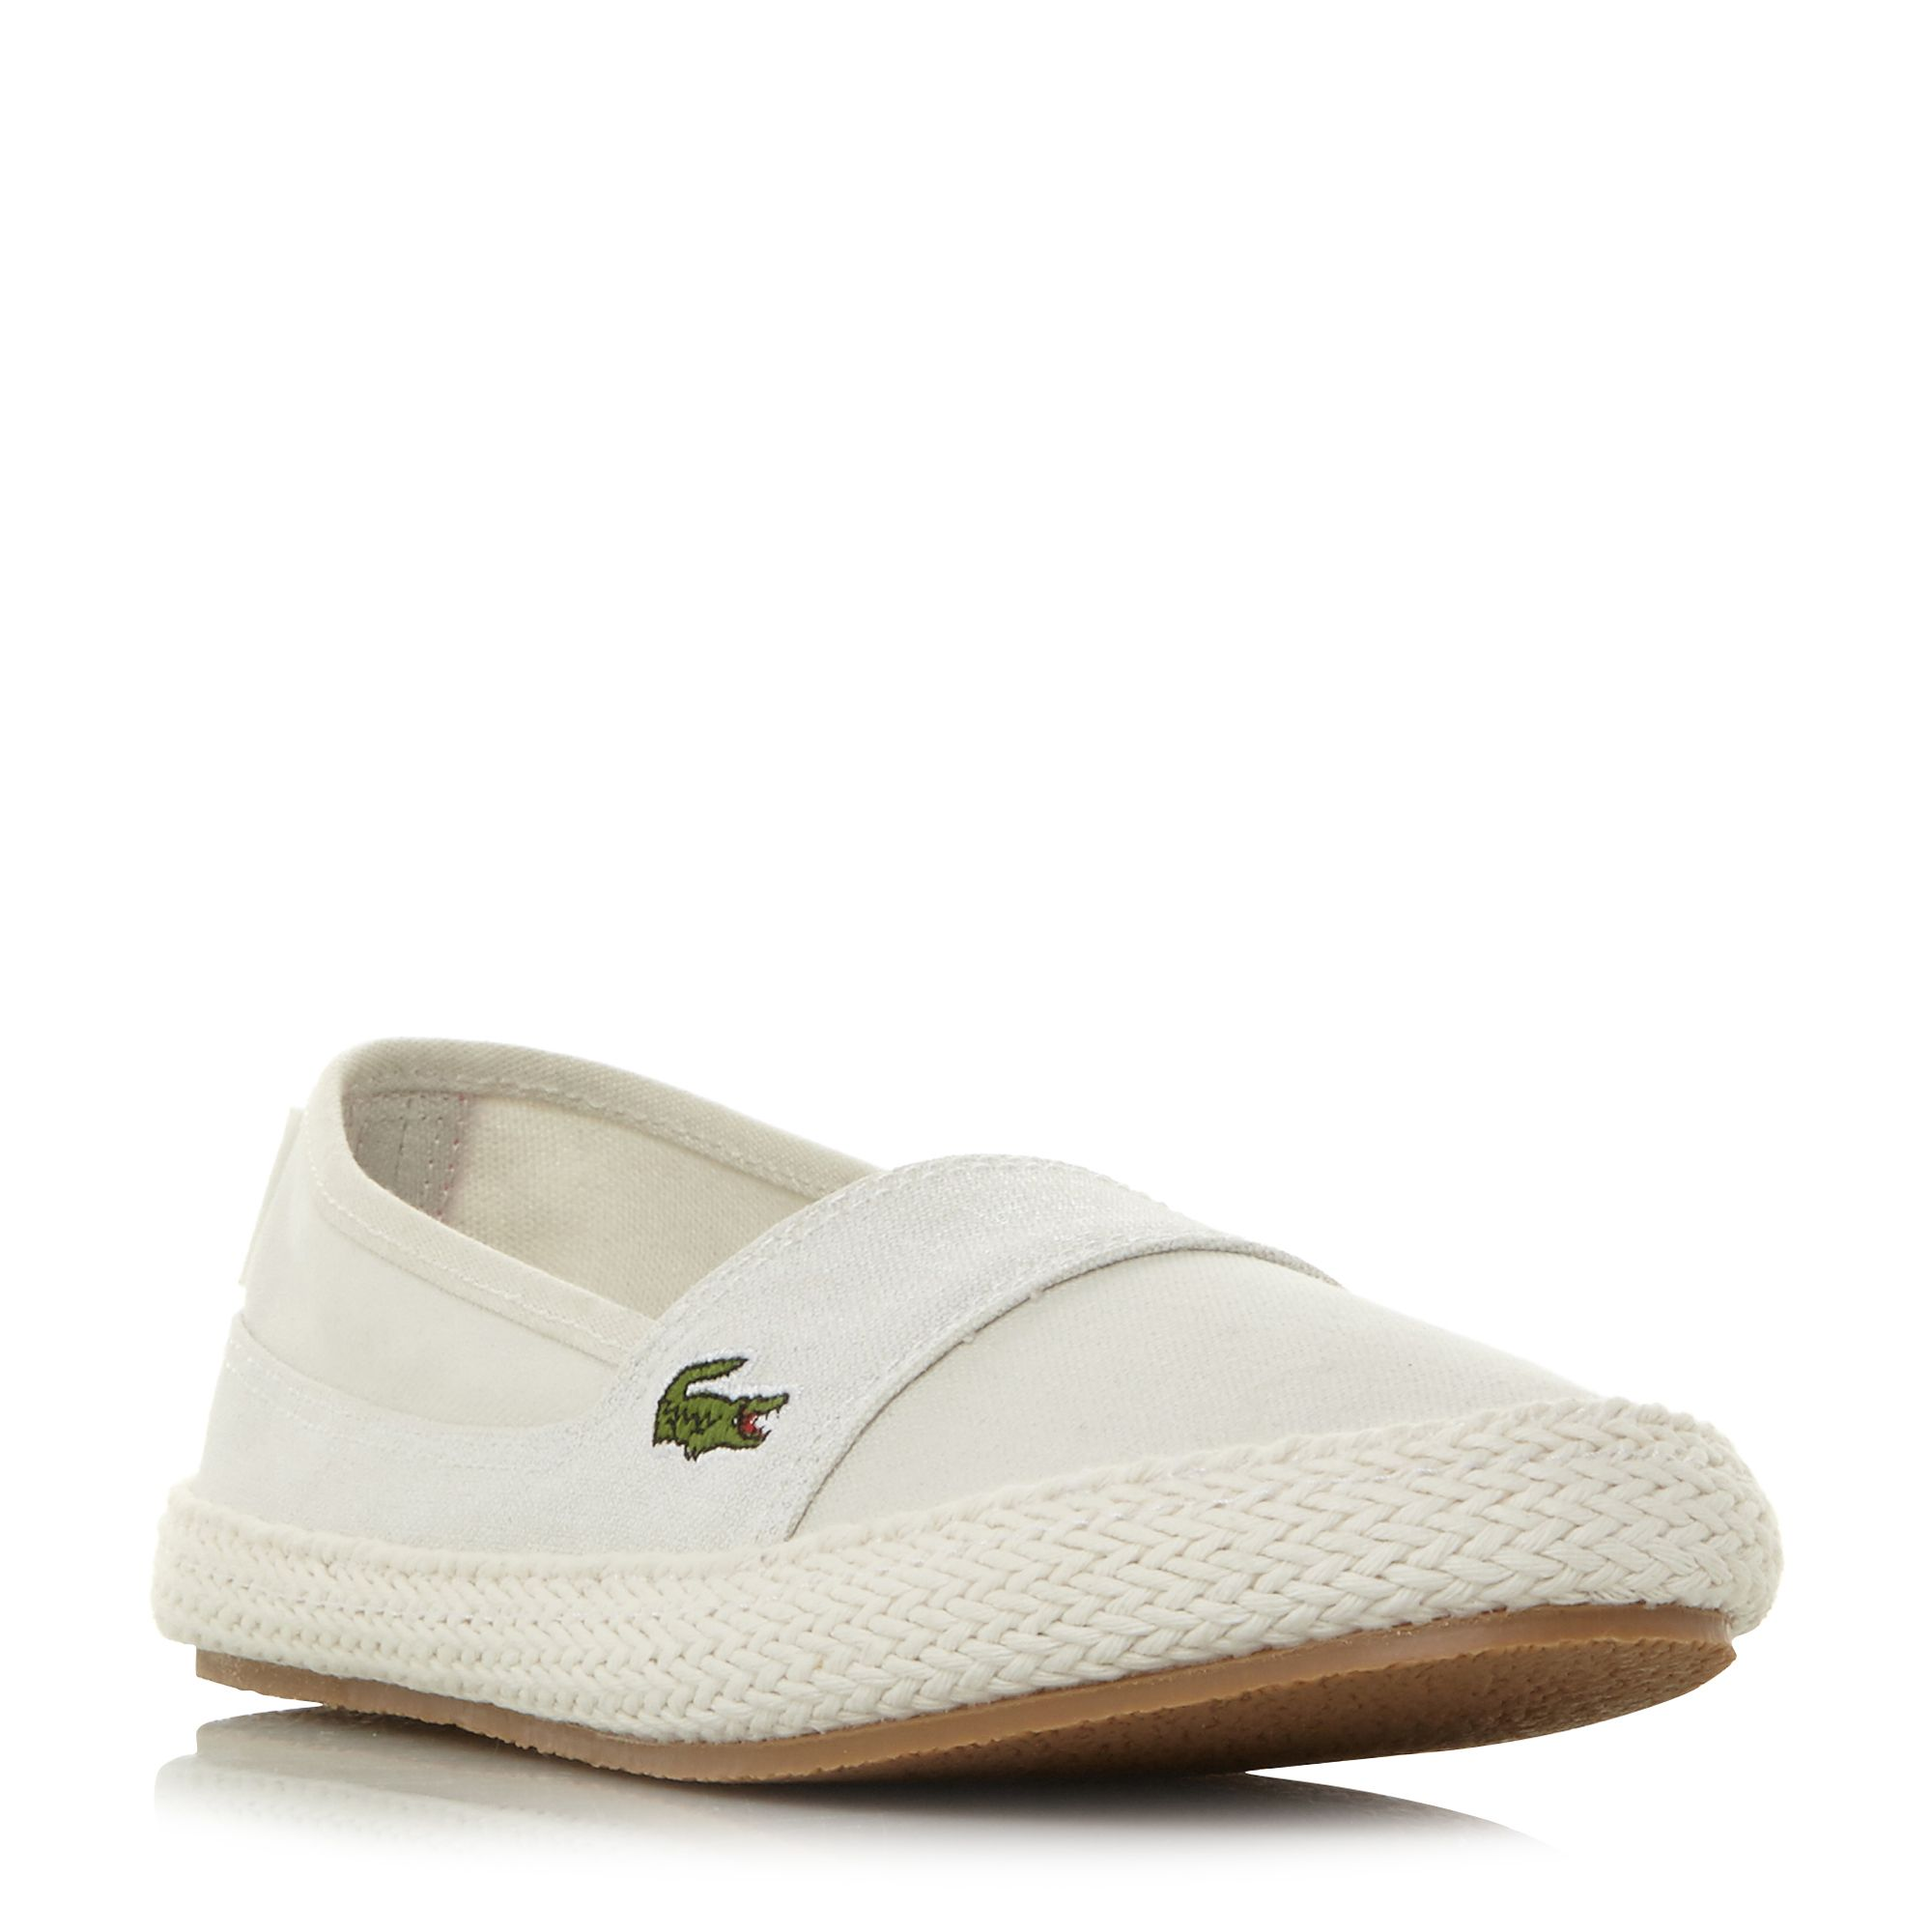 Lacoste Marice Slip On Espadrille Shoes, Off White